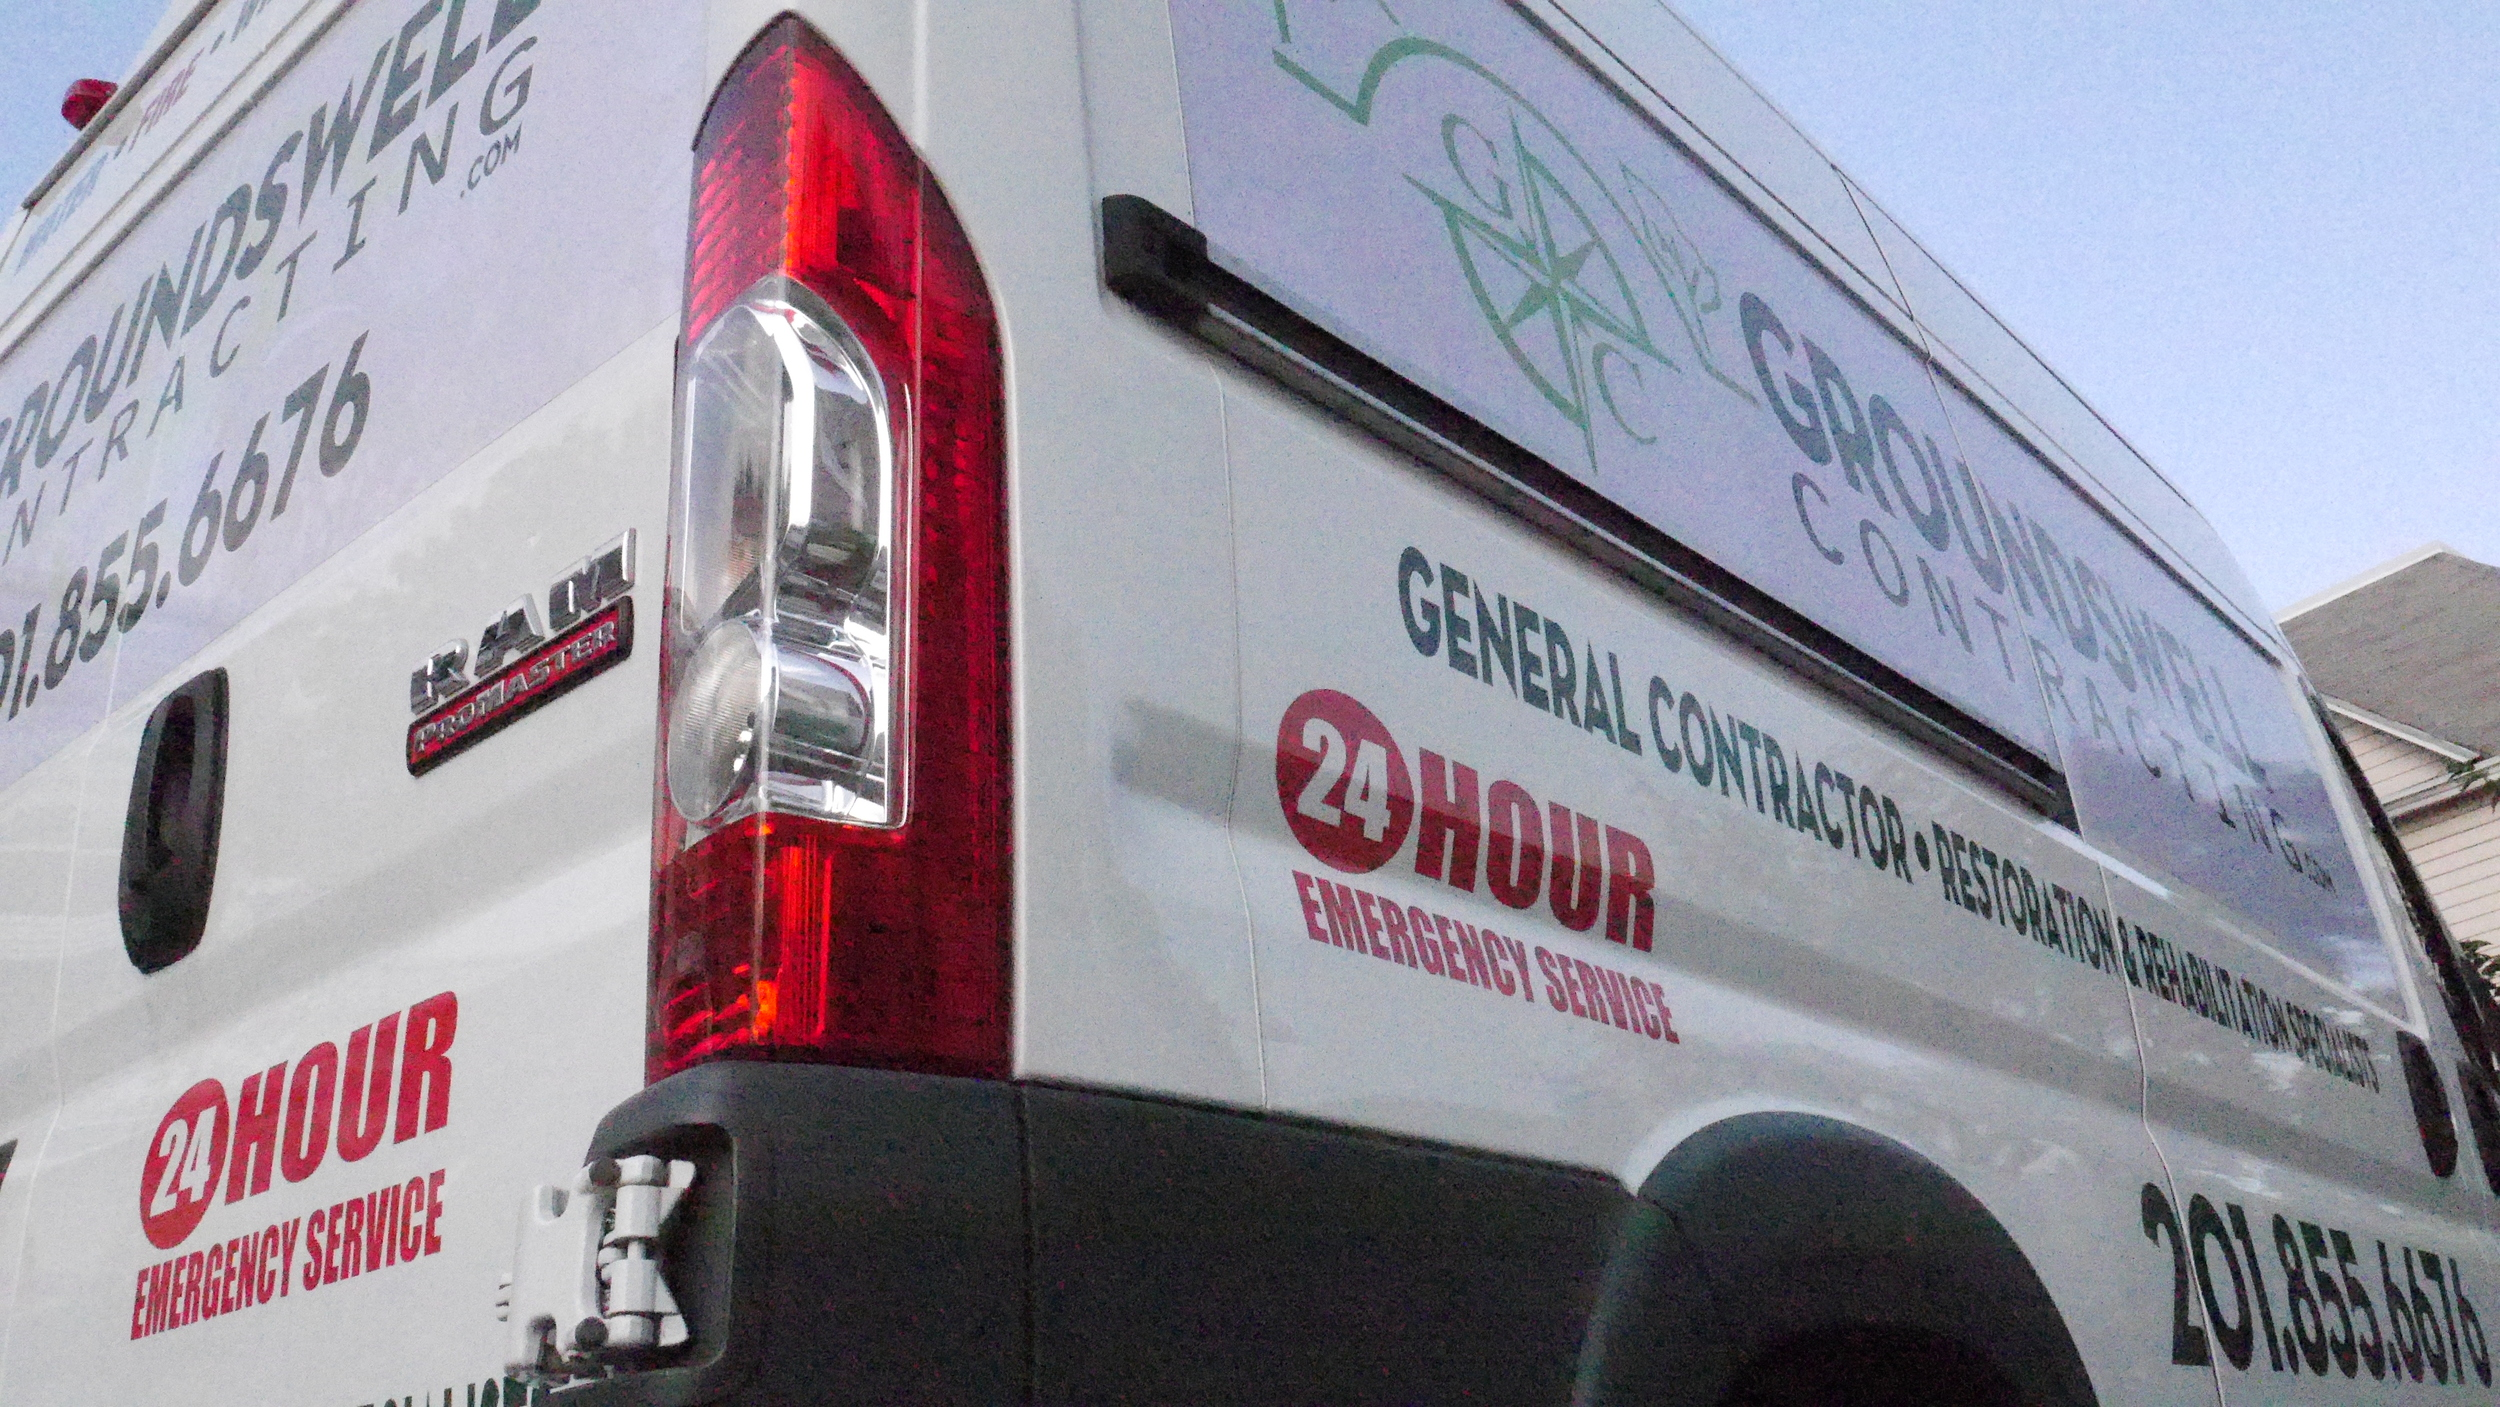 24-hour emergency water damage mitigation services by Groundswell Contracting